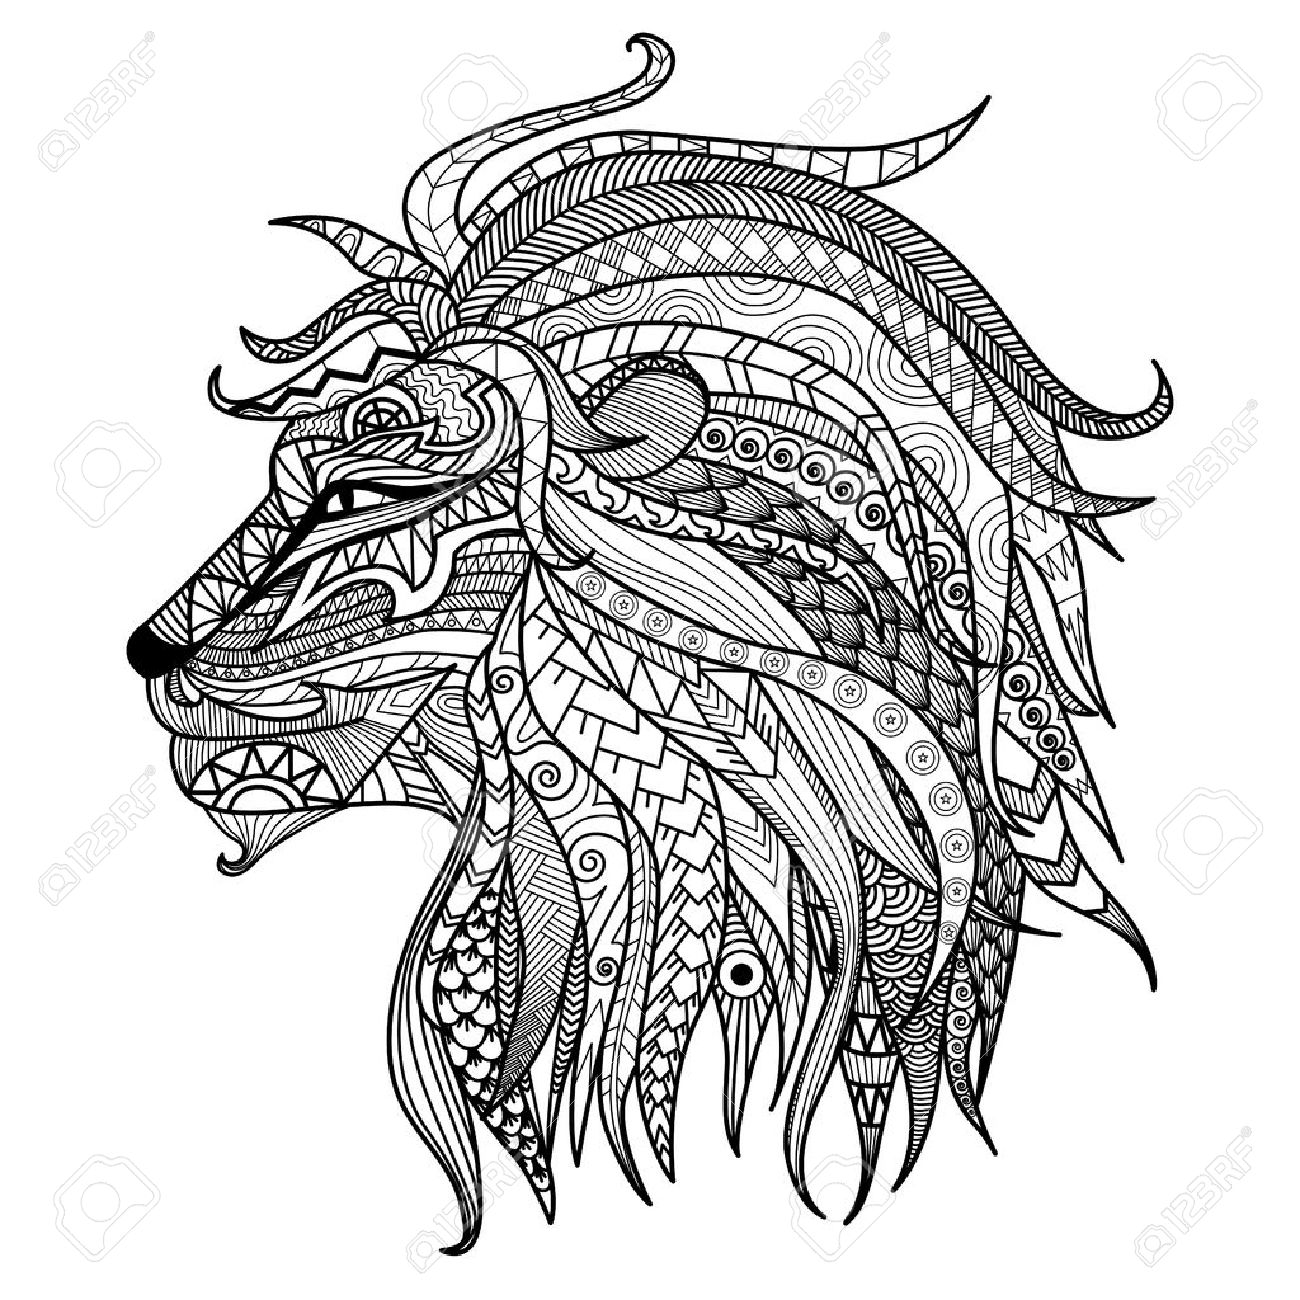 hand drawn lion coloring page royalty free cliparts vectors and